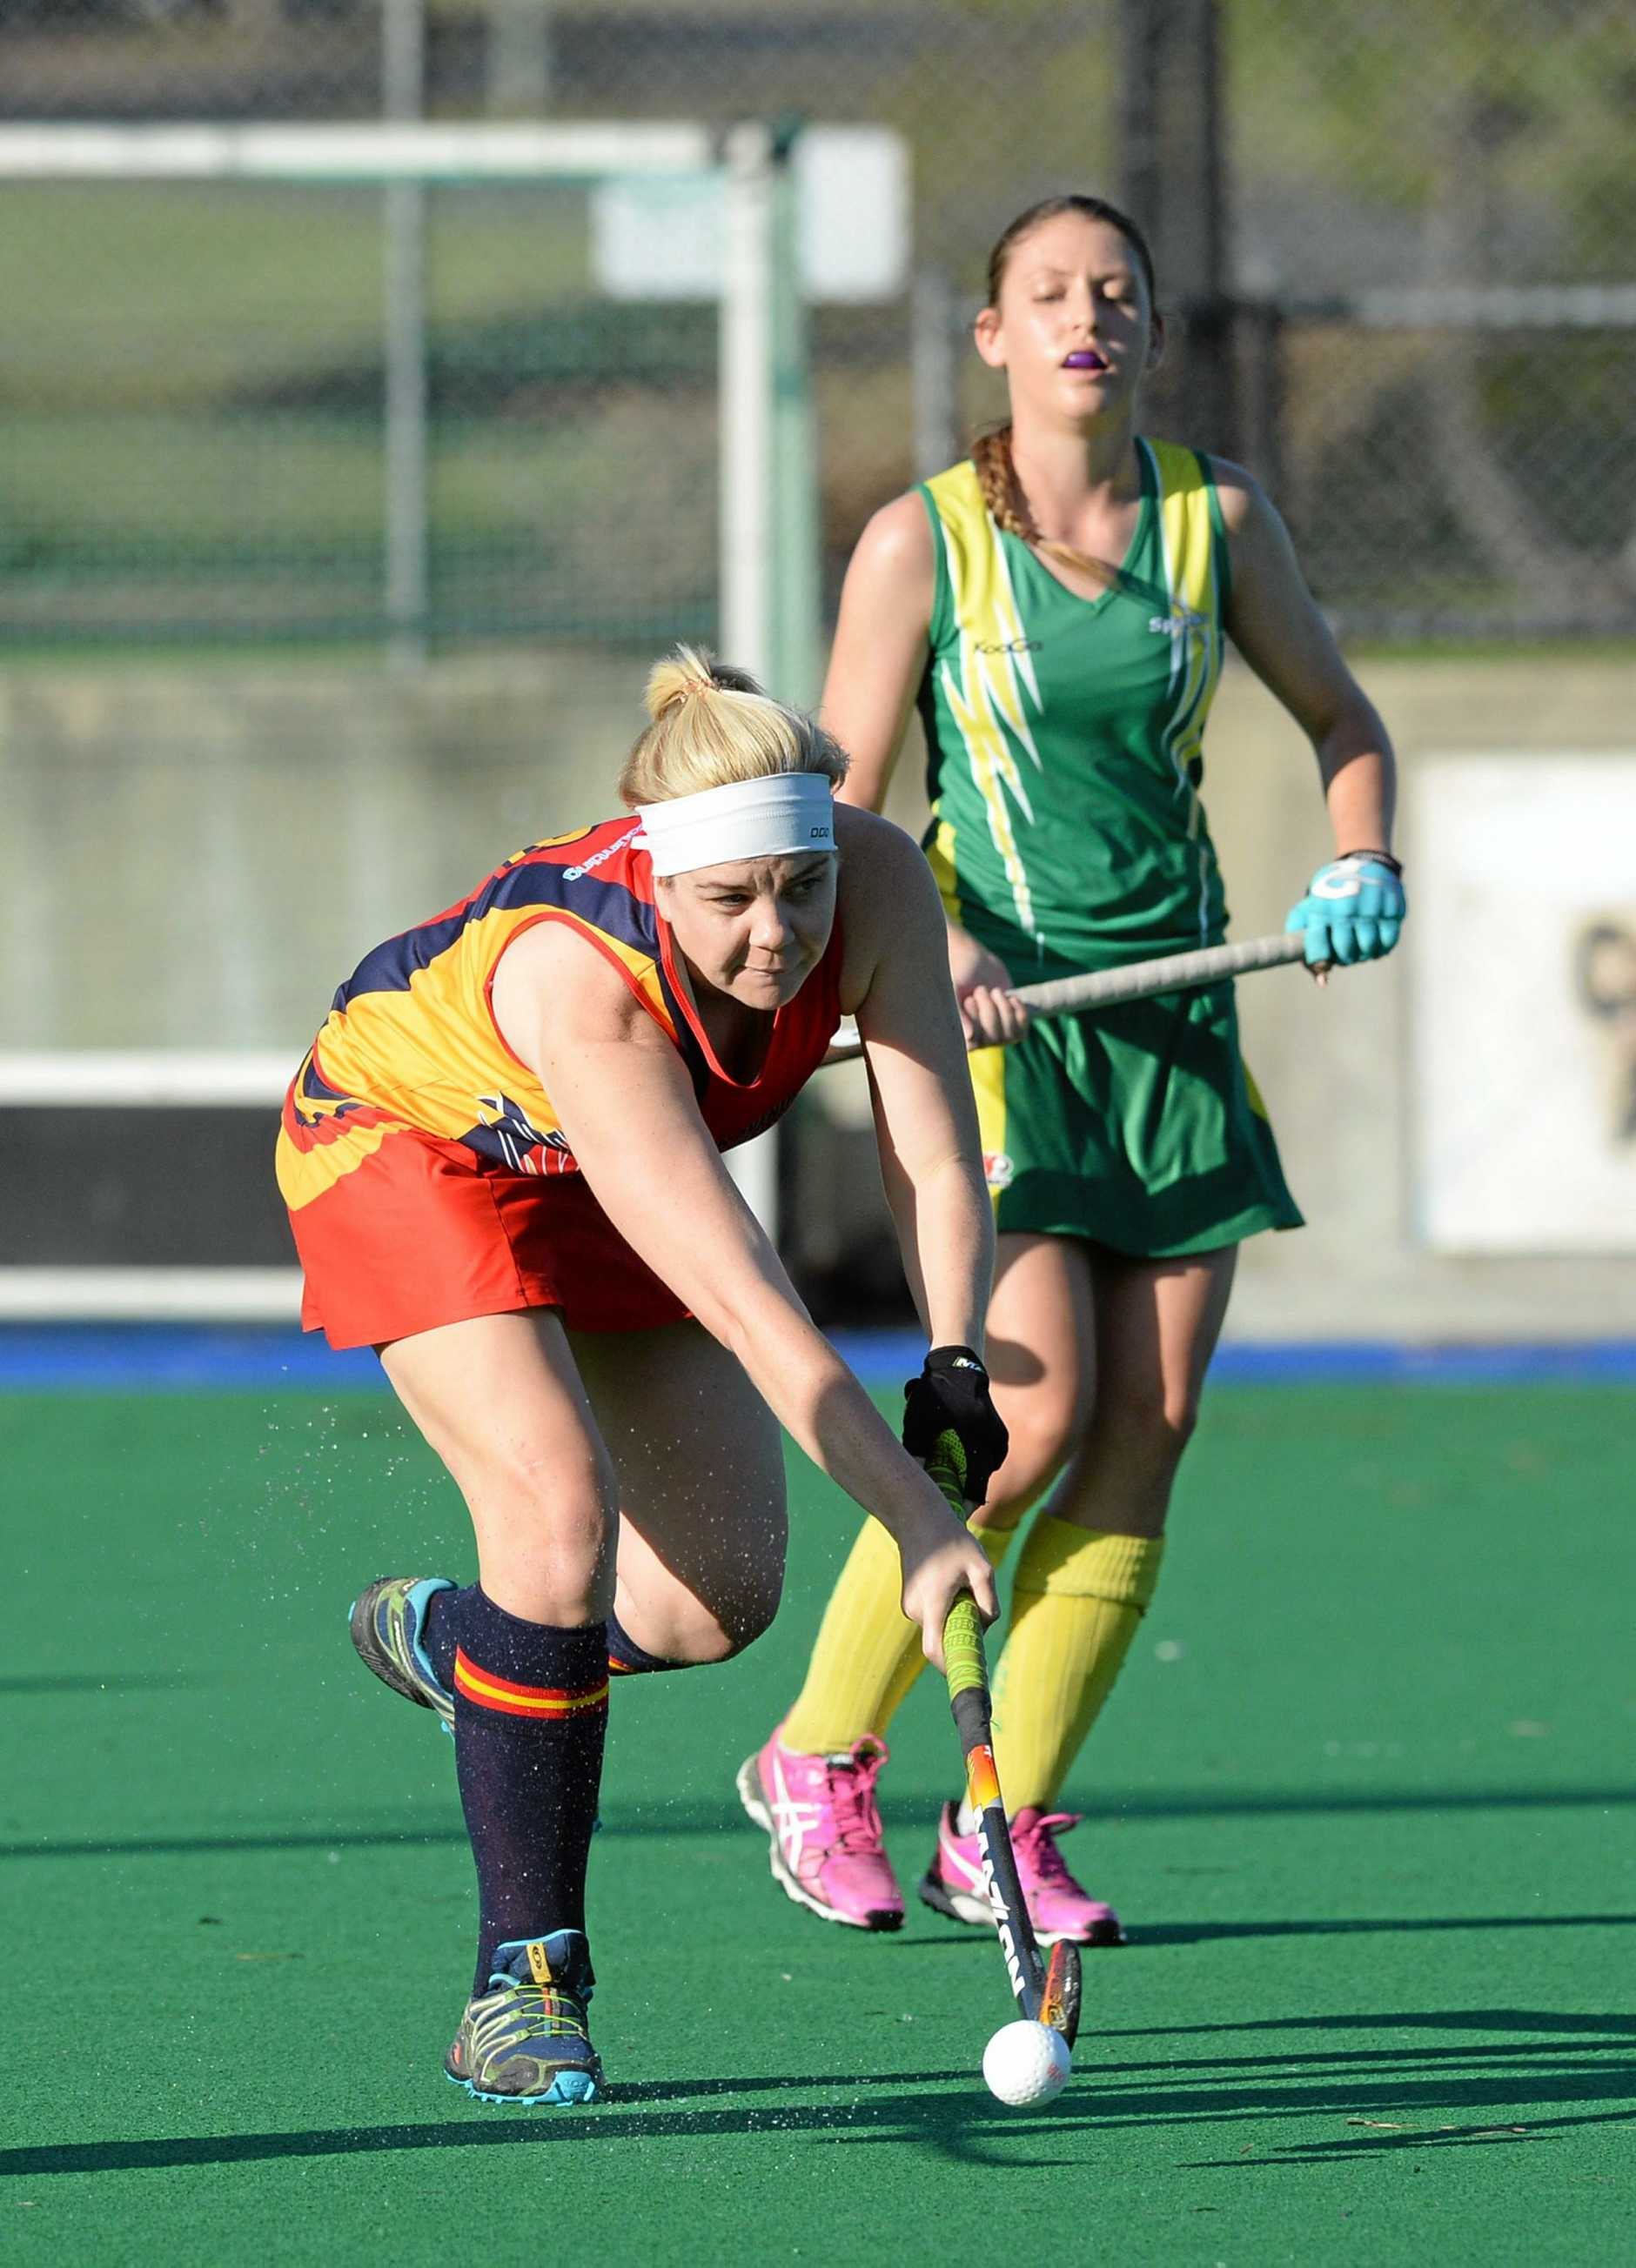 Park Avenue player Tyneille Madden in the hockey game between Park Avenue and Sparks at Kalka Shades on Saturday.   Photo: Chris Ison / The Morning Bulletin